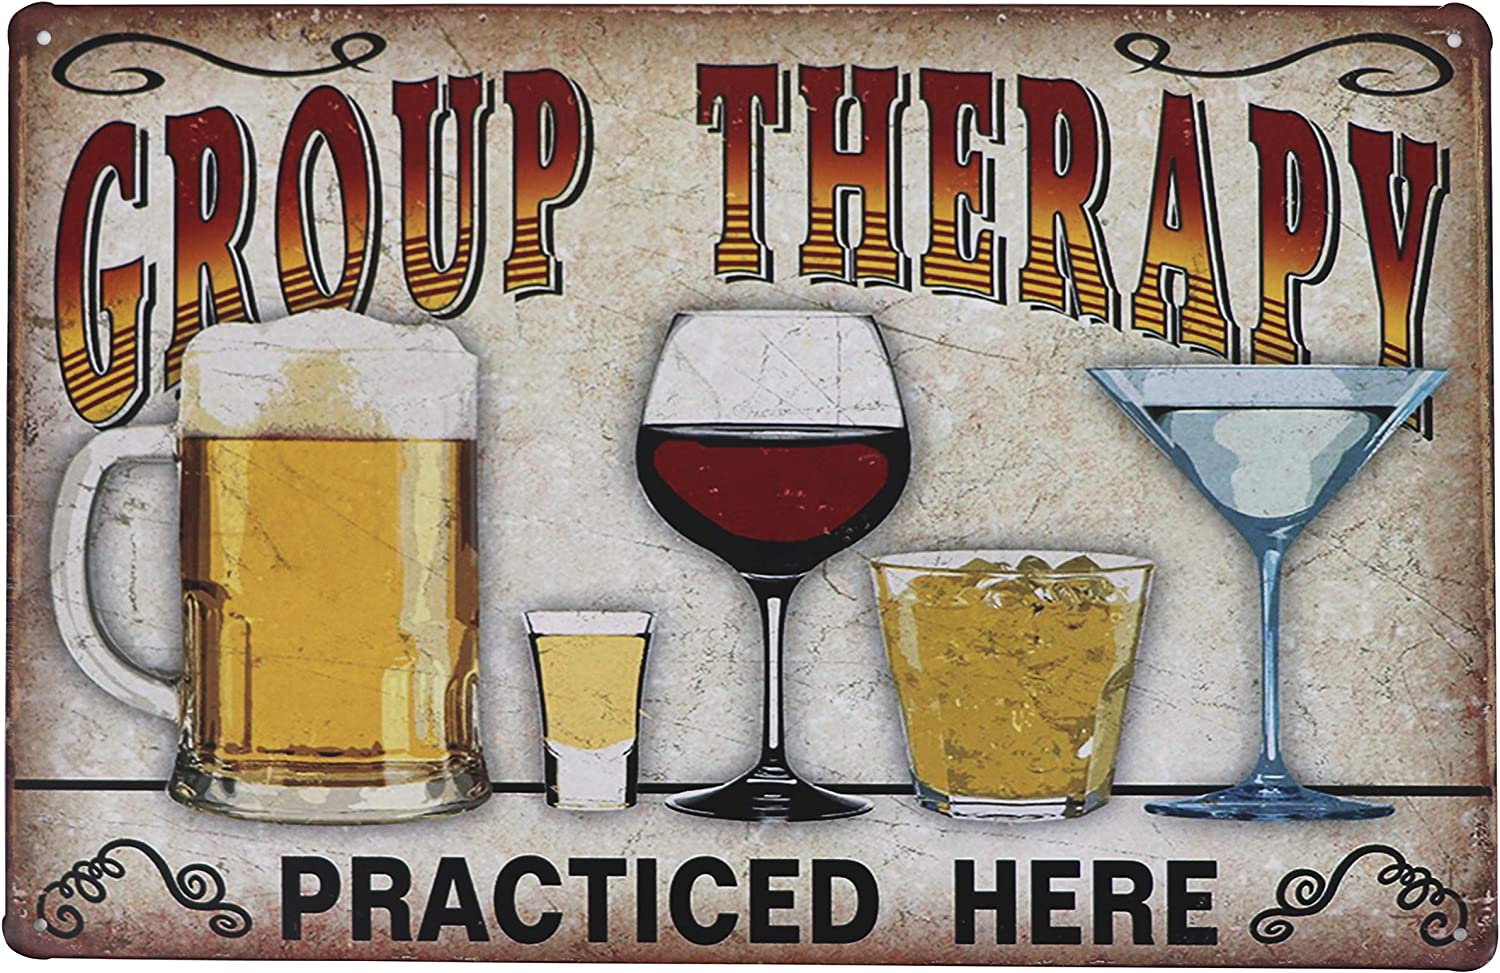 Vintage Metal Tin Sign Wall Plaque - Retro Coffee Shop Bar Club Pub Decoration Poster Art Personality Modern Garage Kitchen Dining Room Home Decor Group Therapy Practiced Here 8x12 inch Plate Tin